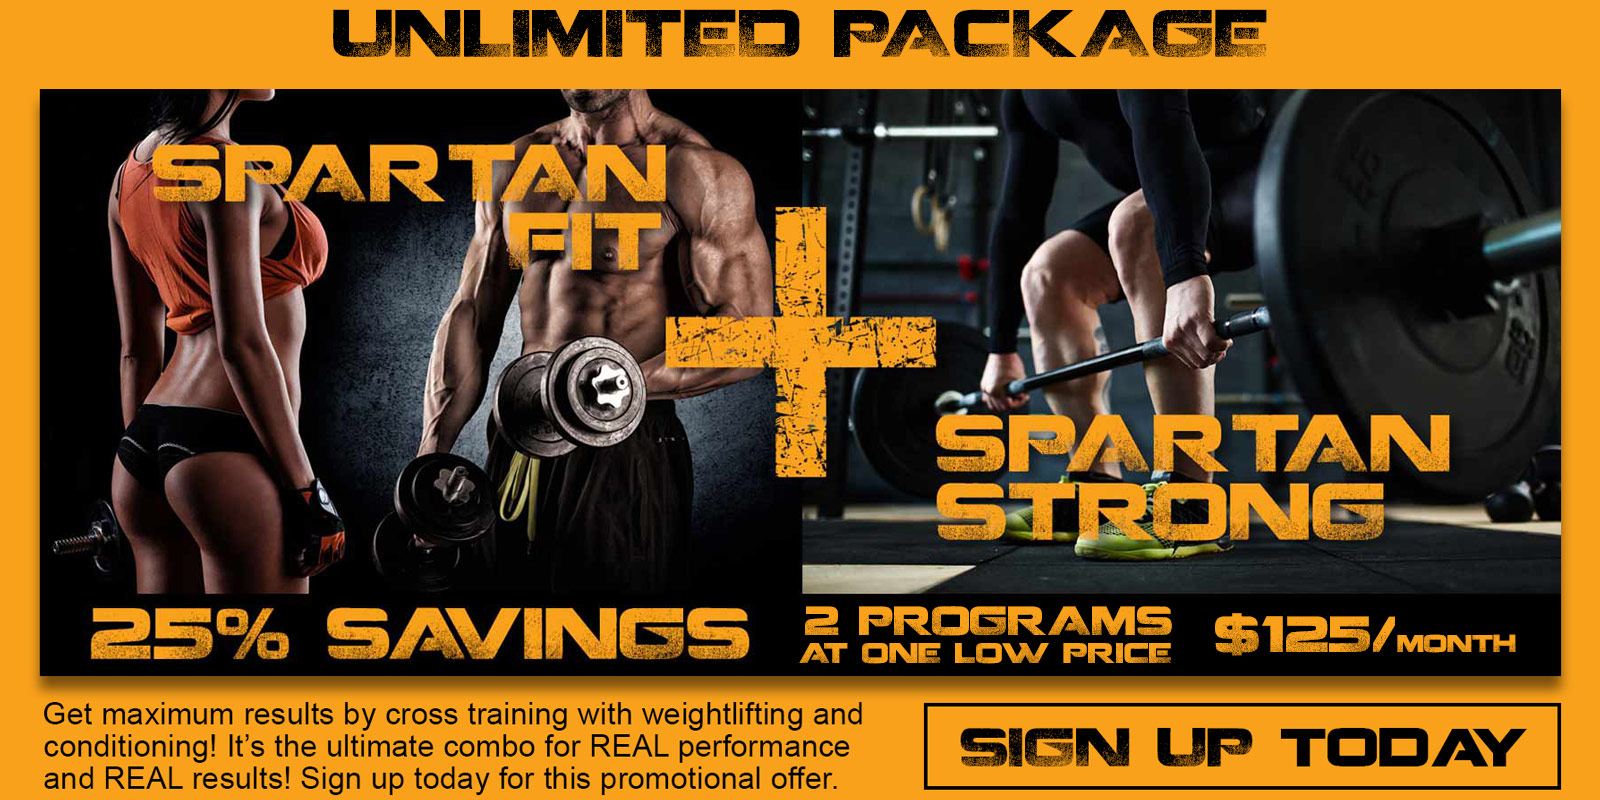 SPARTAN-UNLIMITED-PACKAGE